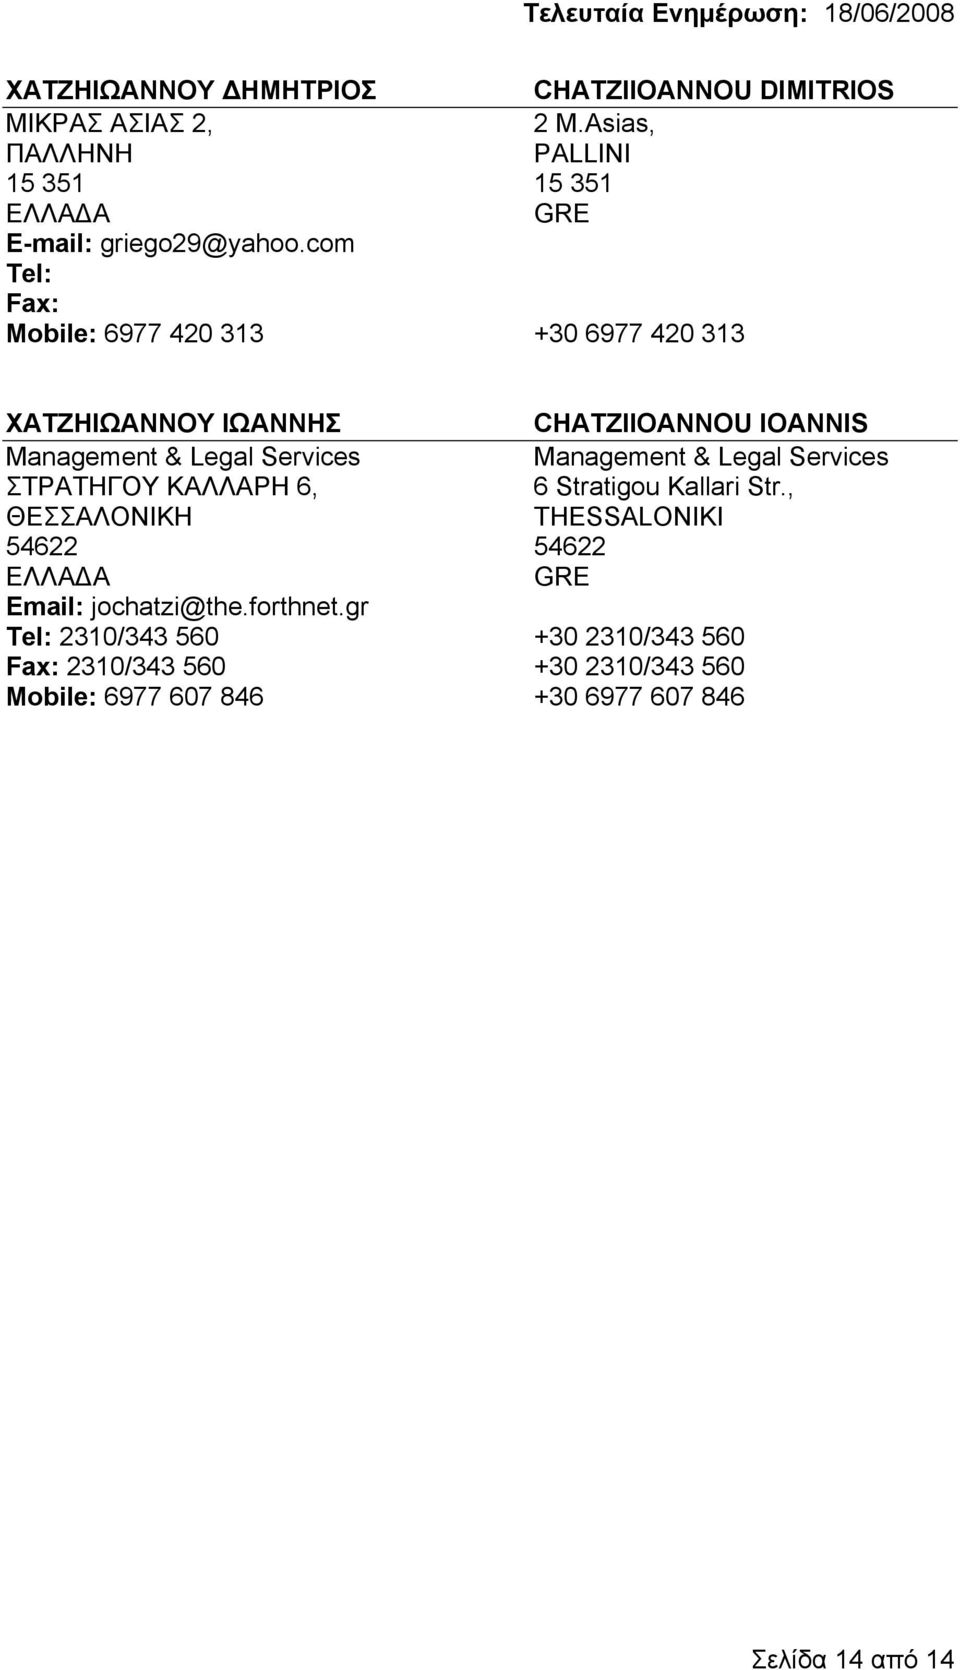 com 6977 420 313 +30 6977 420 313 ΧΑΤΖΗΙΩΑΝΝΟΥ ΙΩΑΝΝΗΣ CHATZIIOANNOU IOANNIS Management & Legal Services